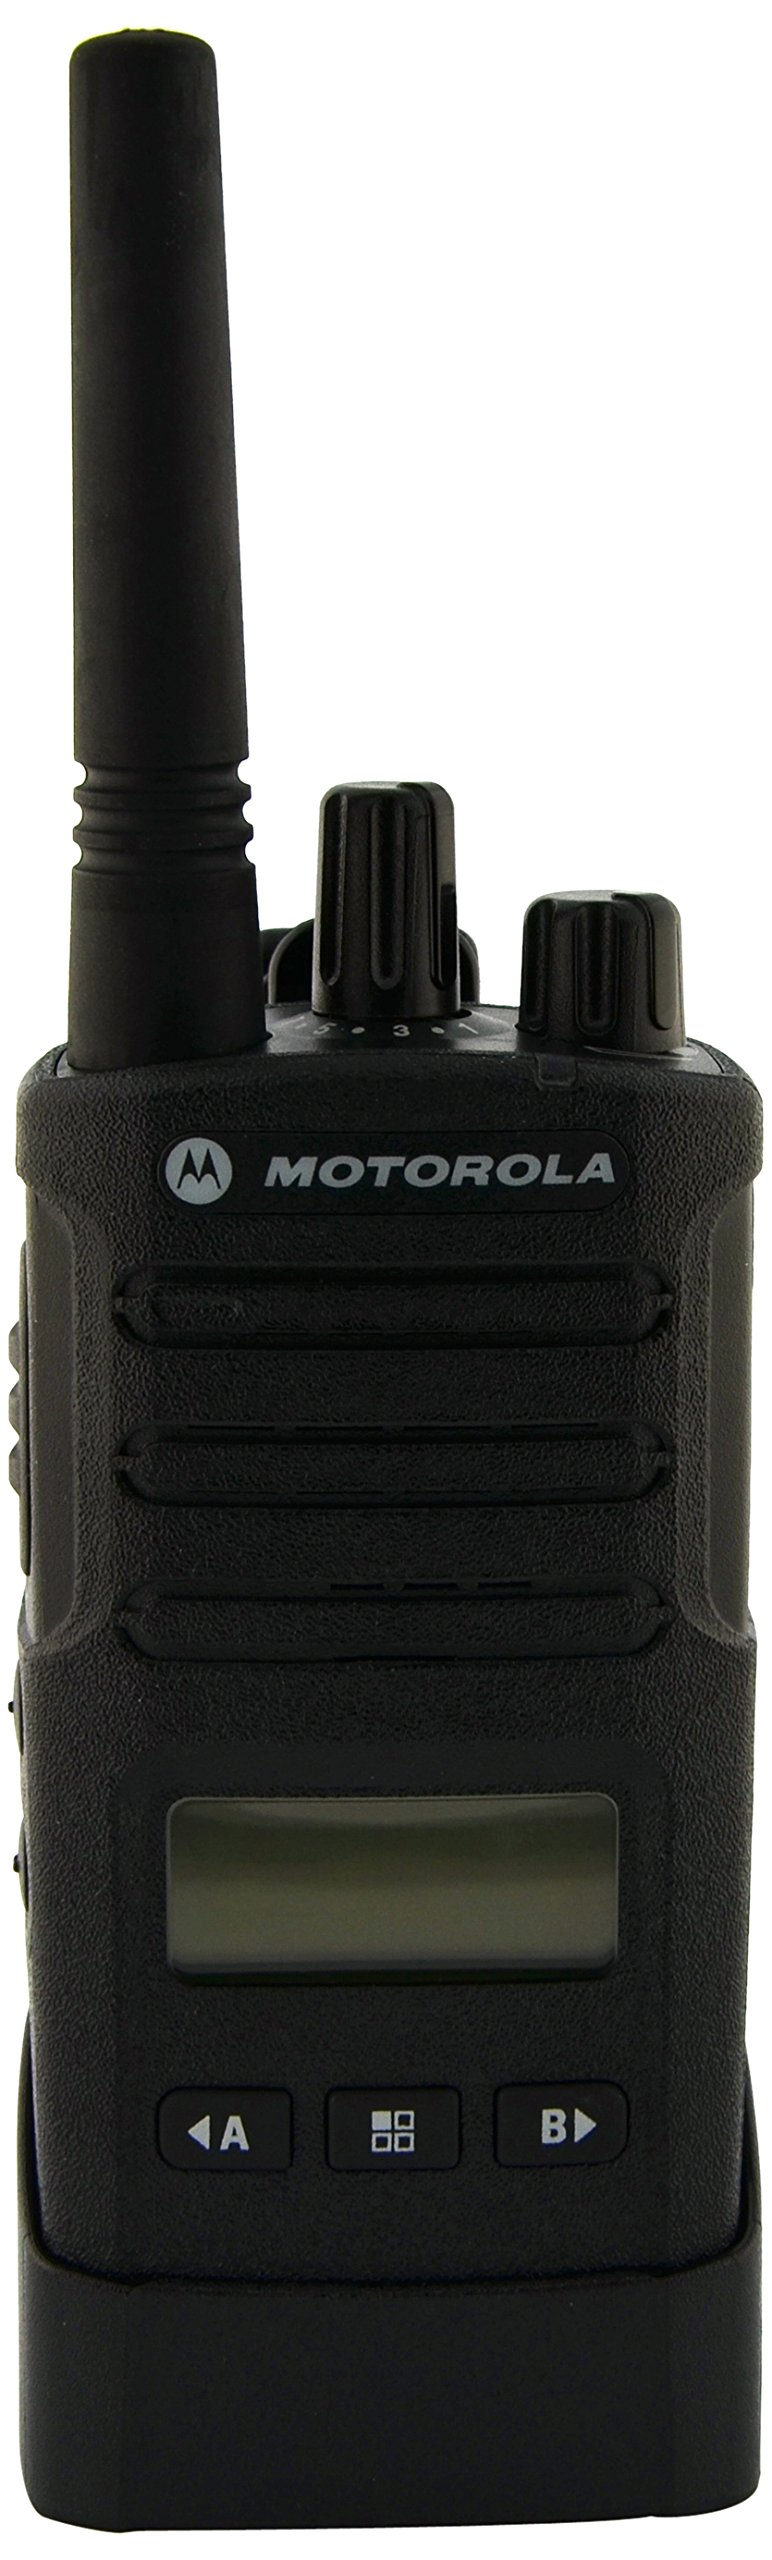 Motorola RMU2080D On-Site 8 Channel UHF Rugged Two-Way Business Radio with Display and NOAA (Black)